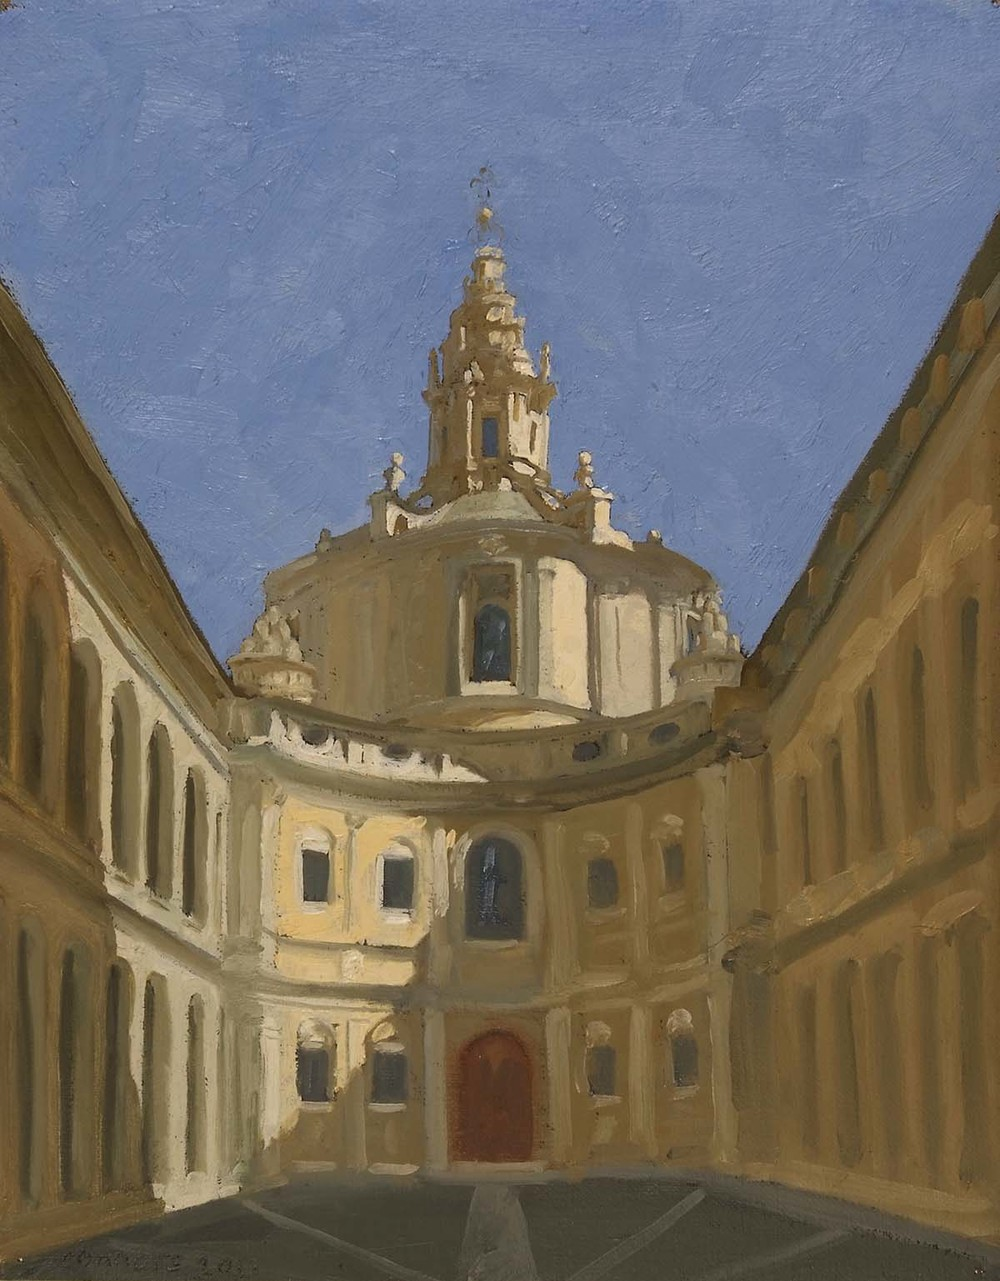 Sant'Ivo alla Sapienza, 12 x 9.5 inches, oil on prepared paper